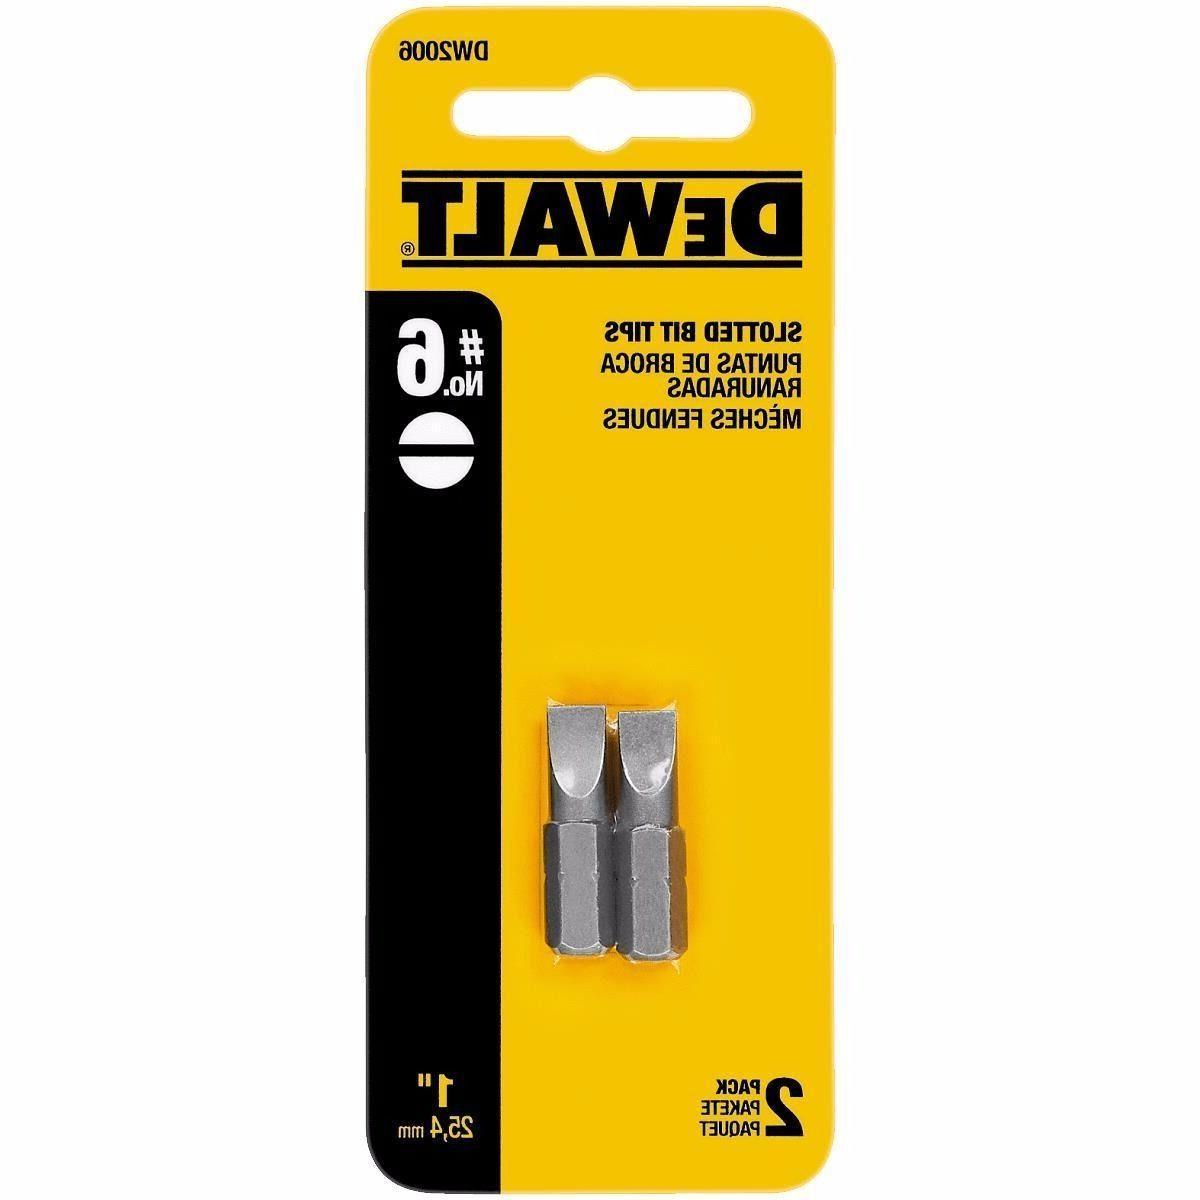 dw2006 slotted bit tip